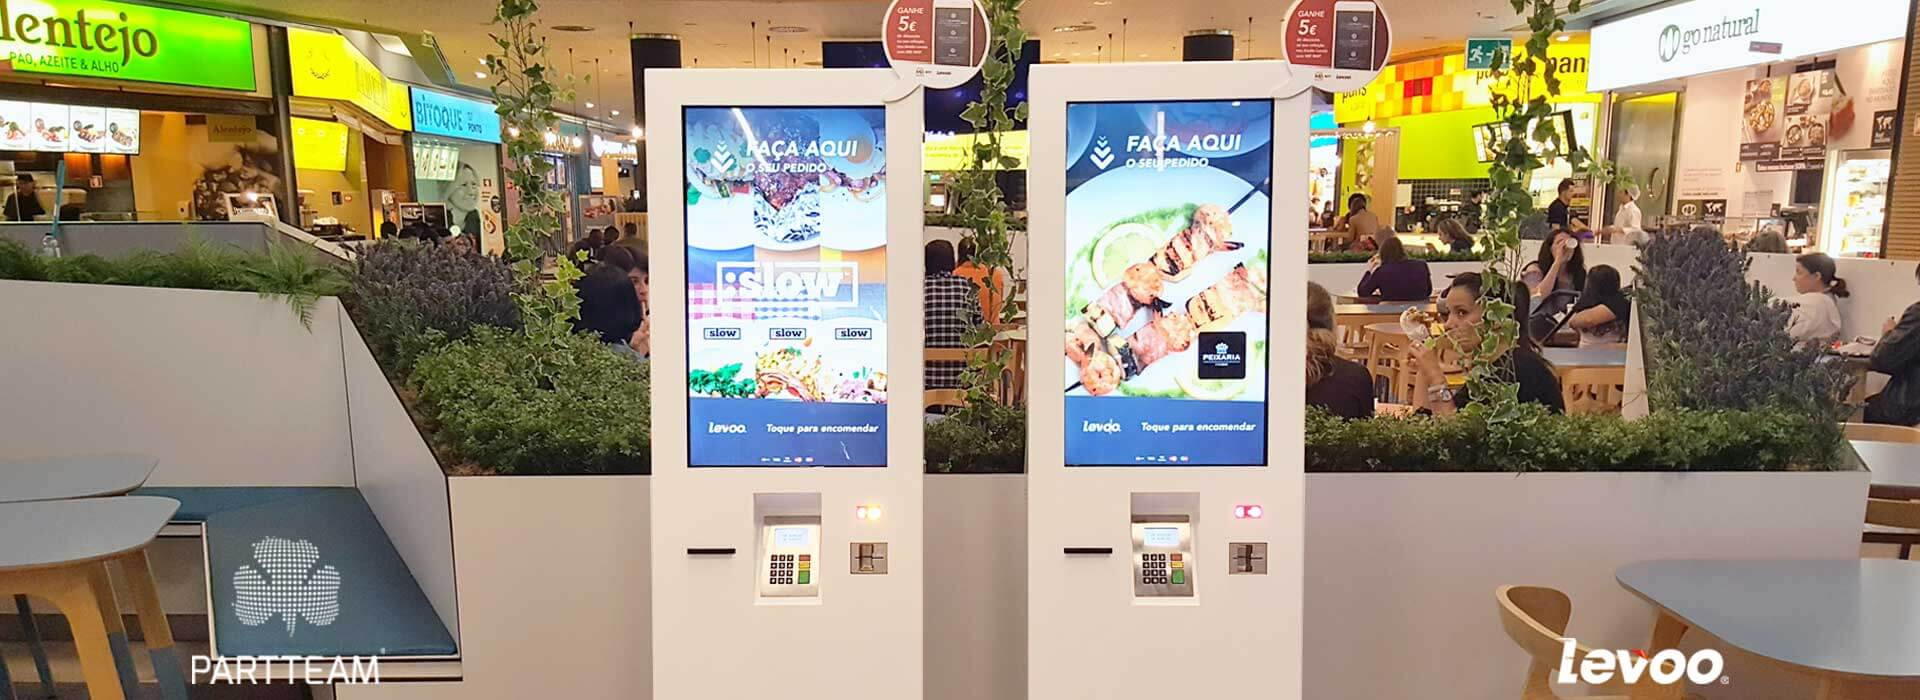 Self-Service Digital Kiosks